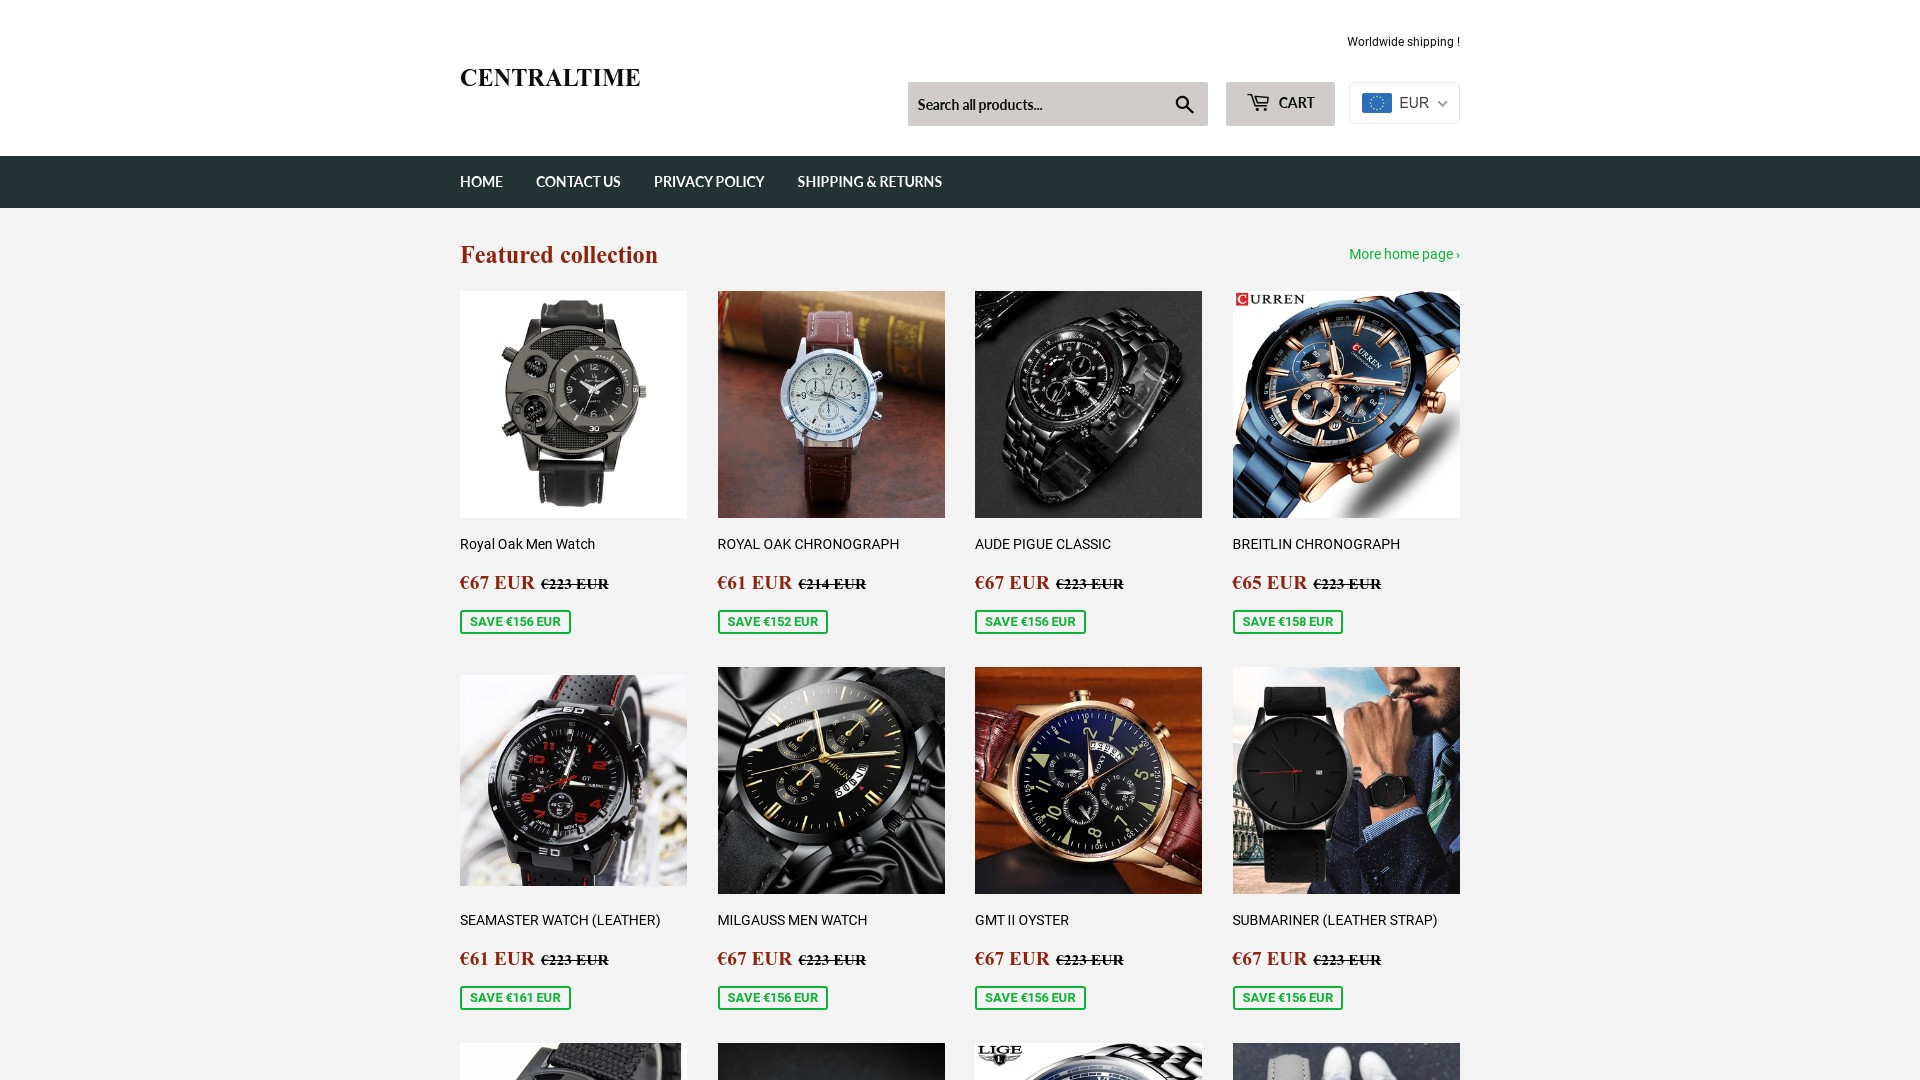 Is Centraltimess a Scam? See the Review of the Online Store